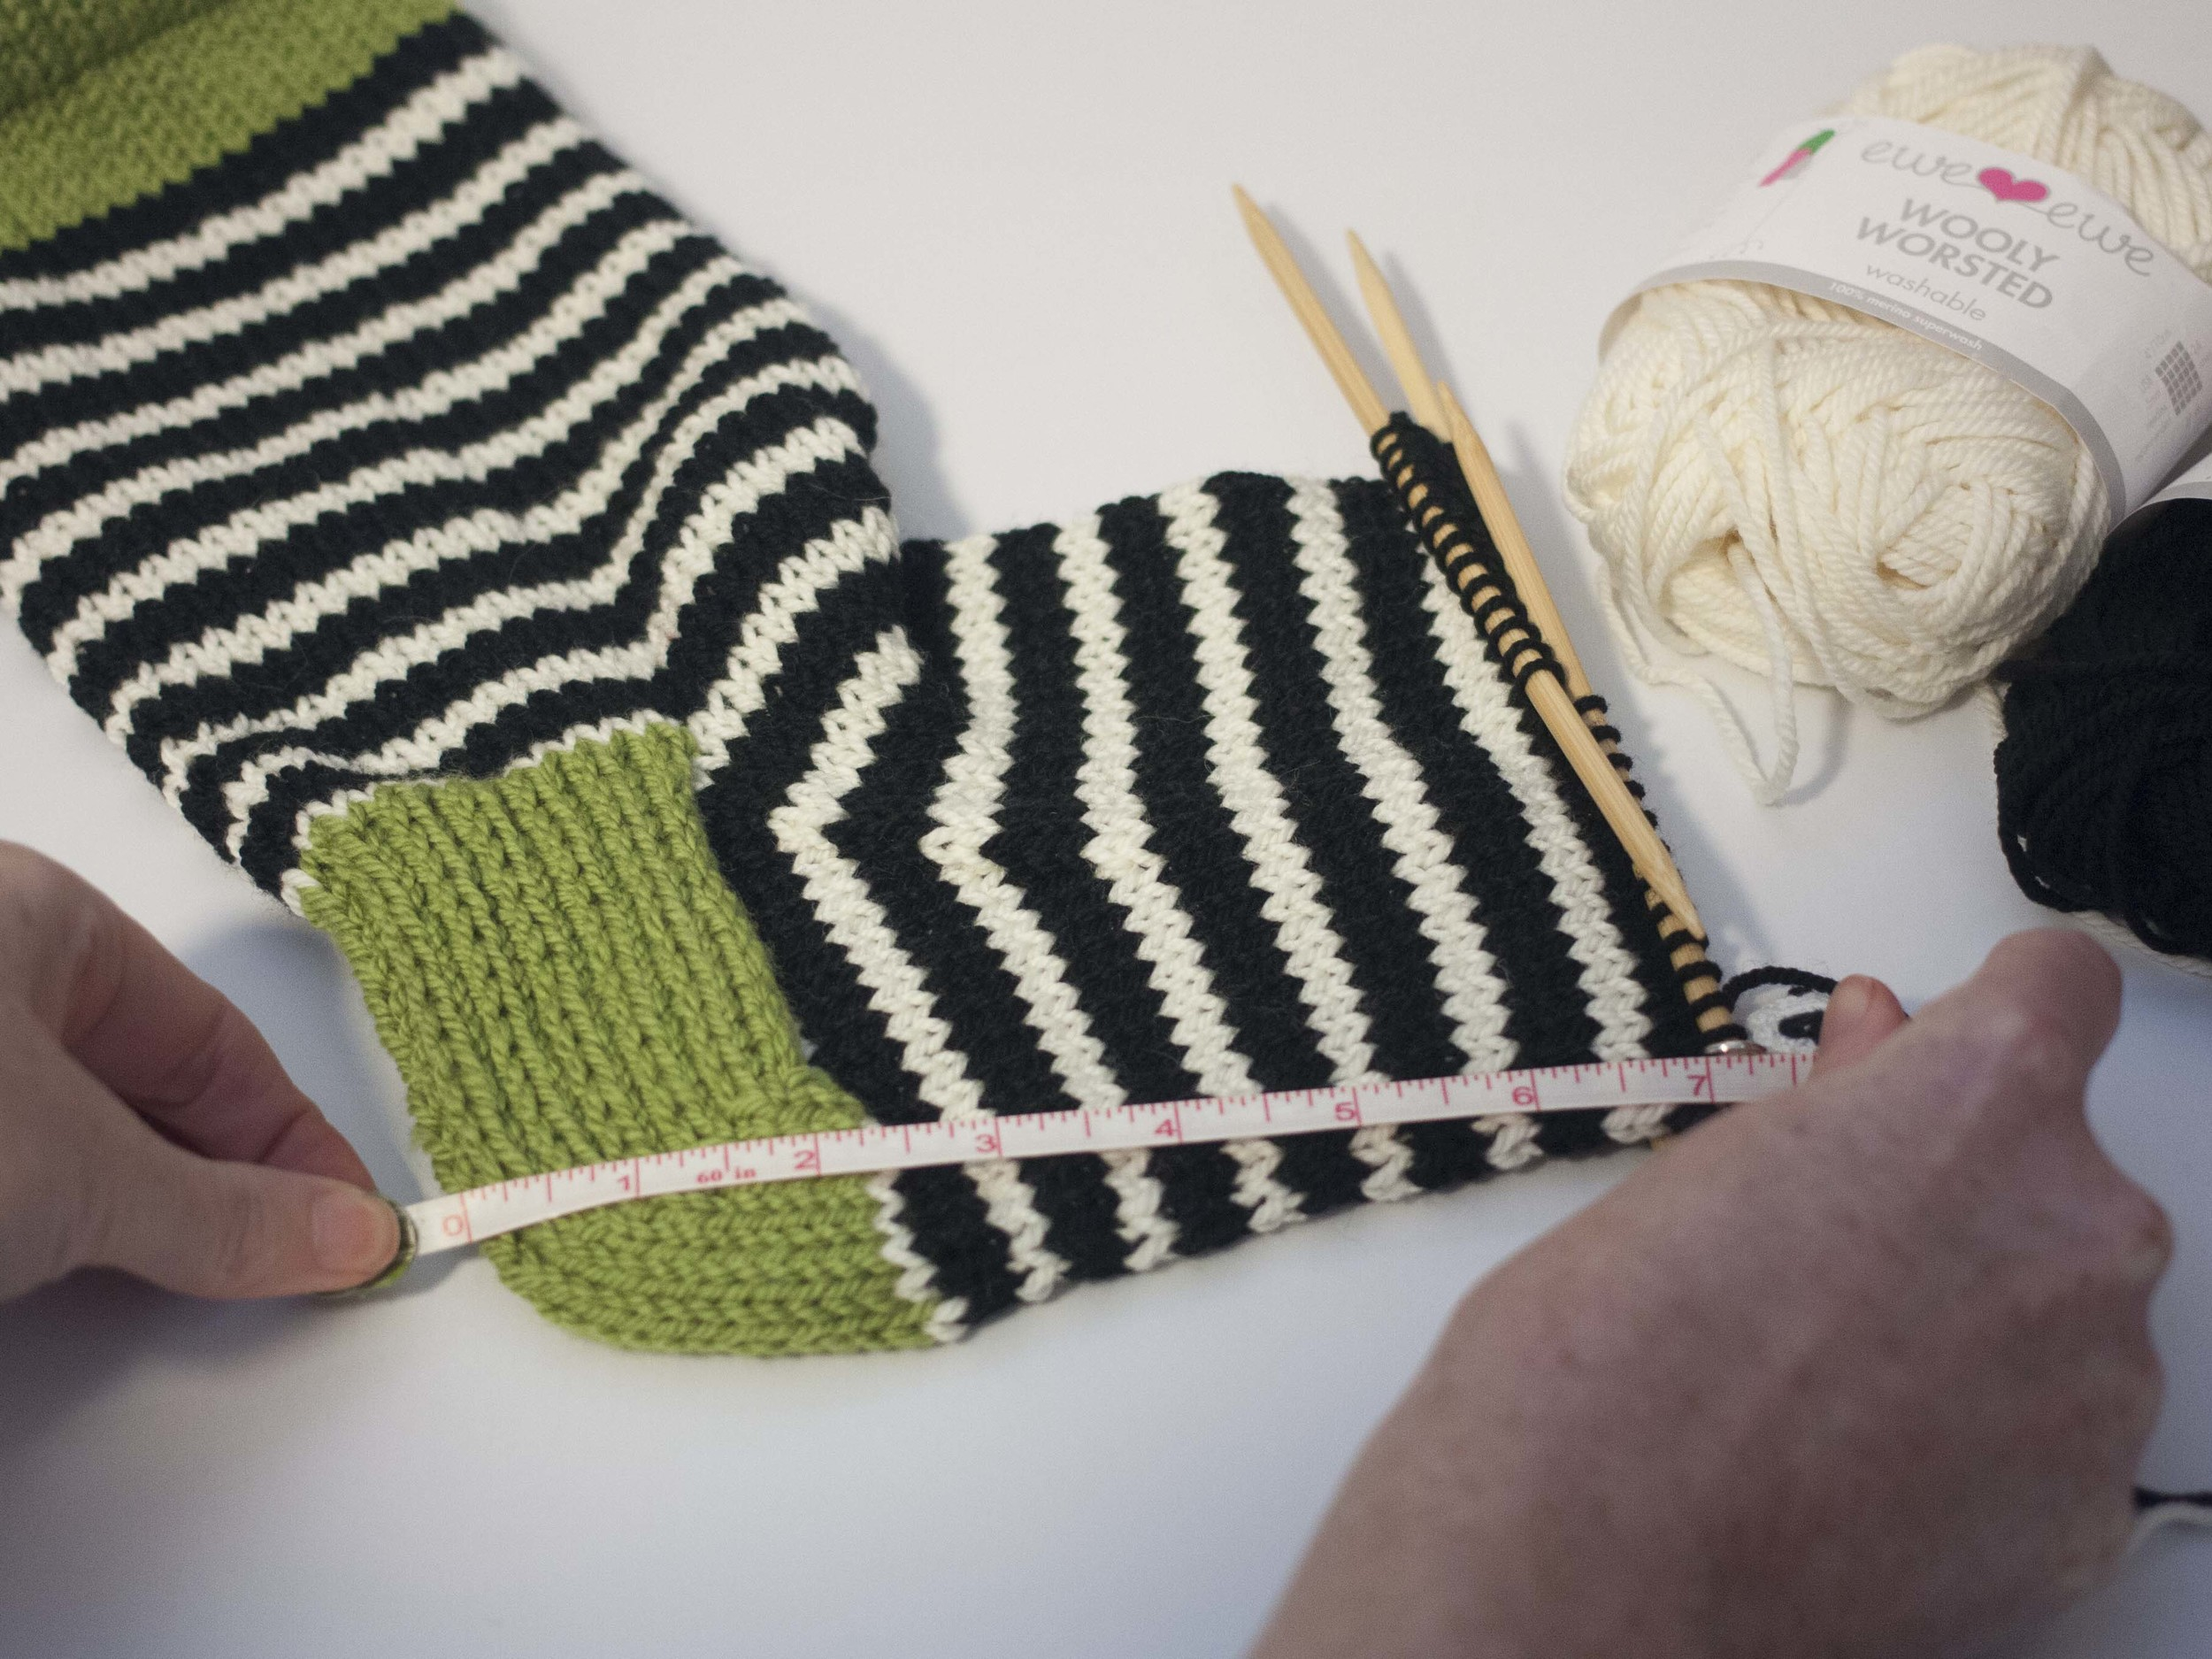 working the foot of a sock